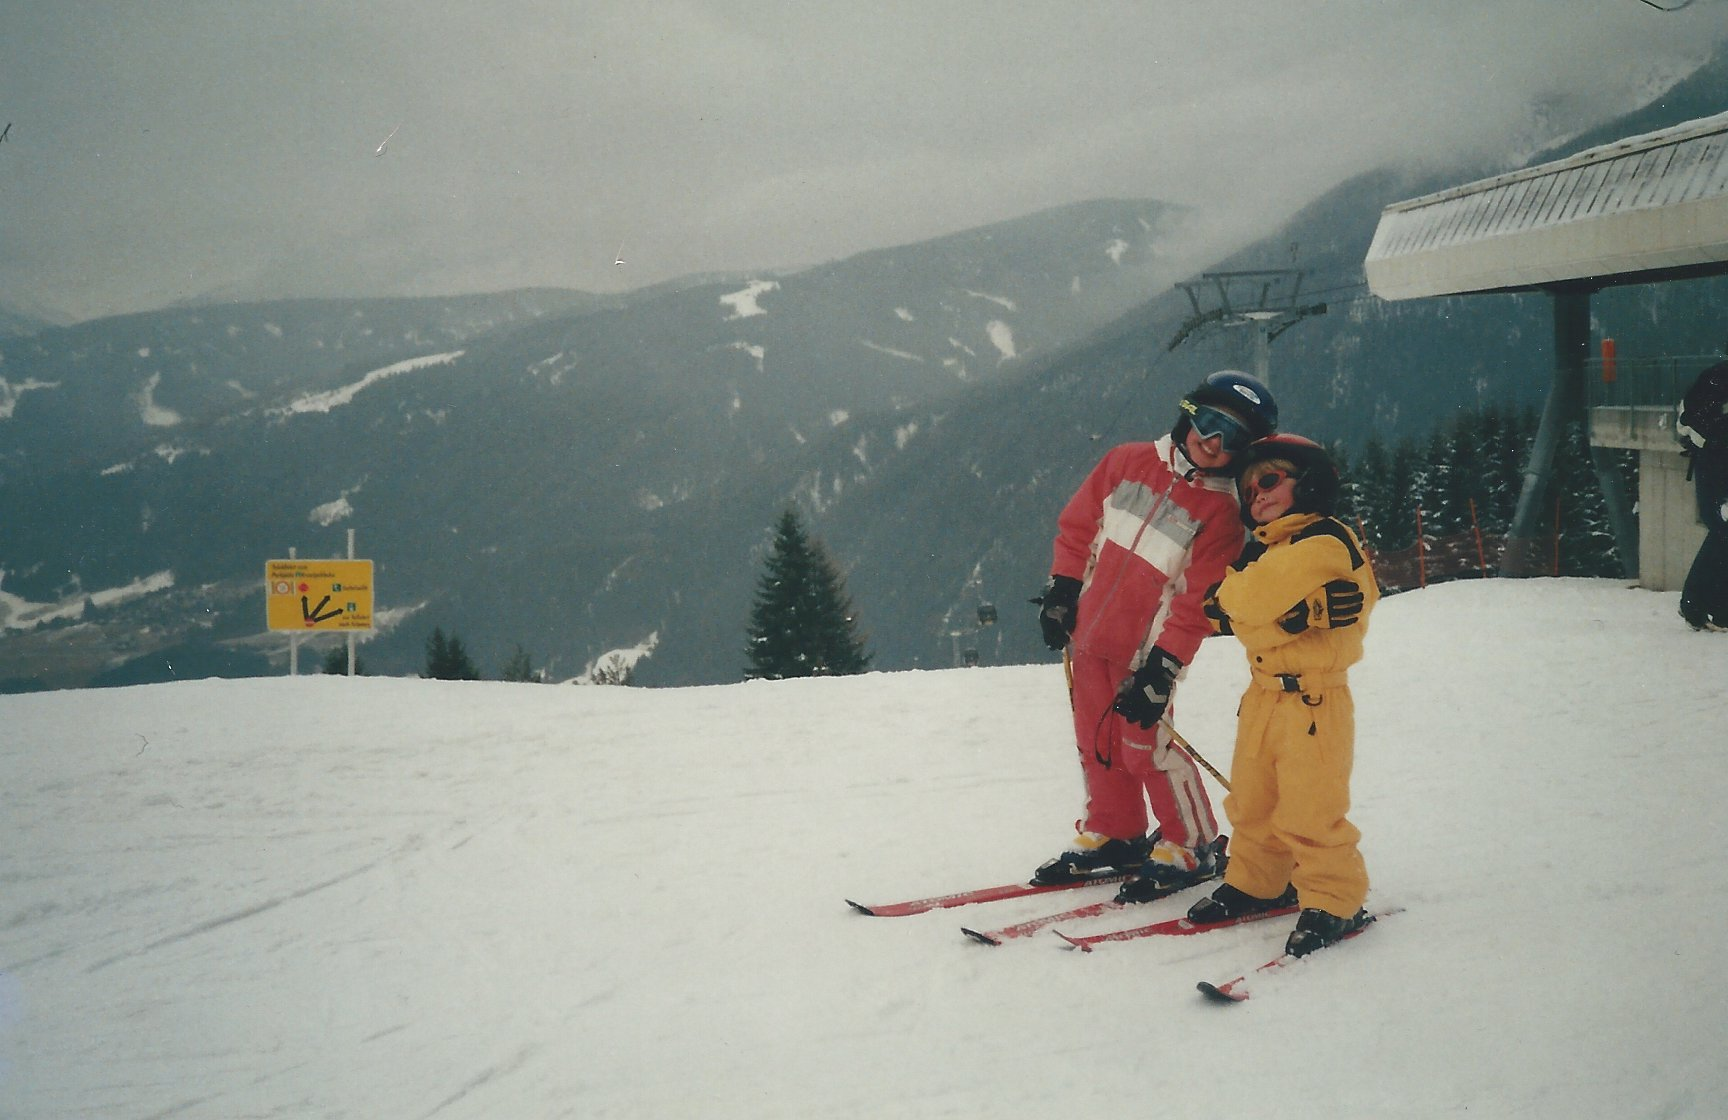 Me (still on skis!) with the 'lil bro